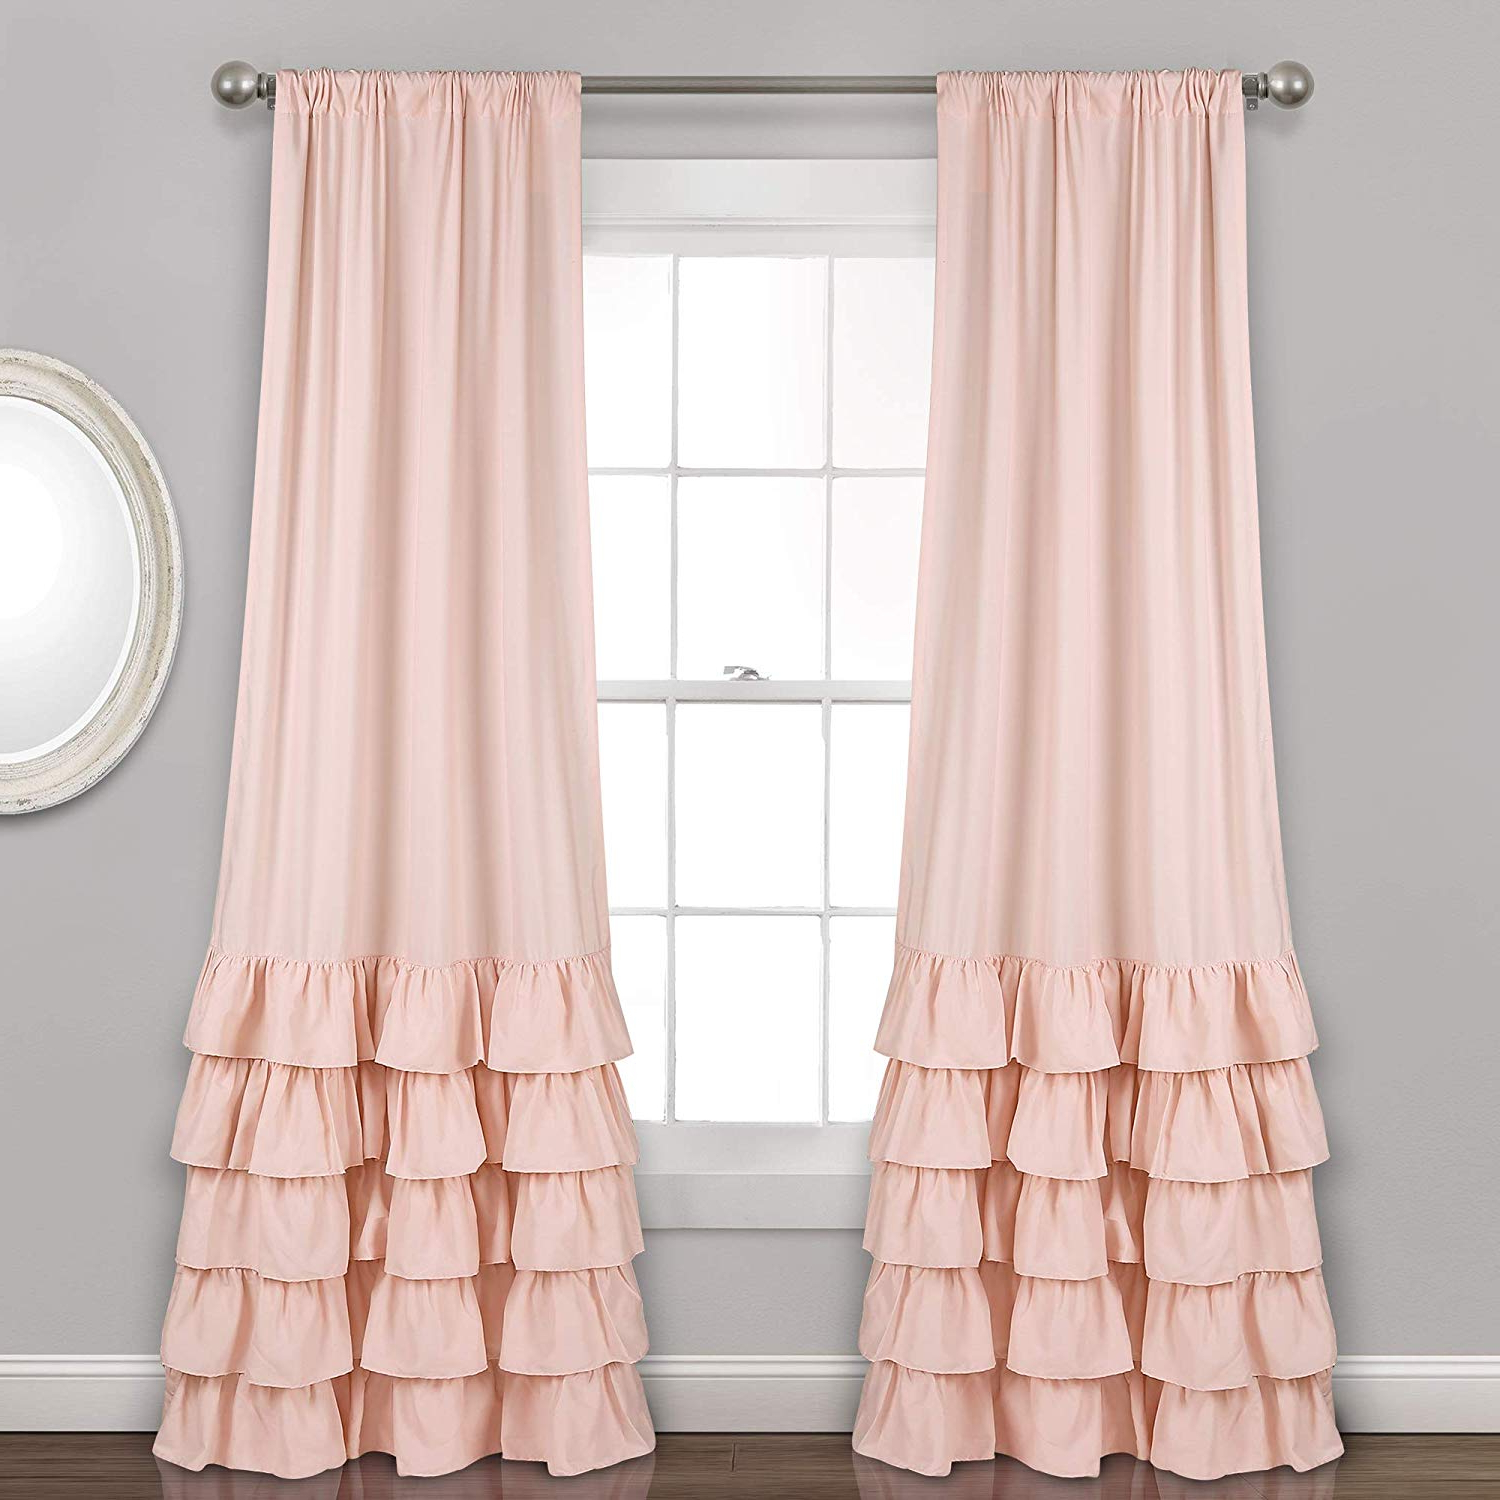 "Most Current Lydia Ruffle Window Curtain Panel Pairs Regarding Lush Decor Allison Ruffle Curtains Window Panel Set For Living, Dining Room, Bedroom (Pair), 84"" X 40"", Blush (View 7 of 20)"